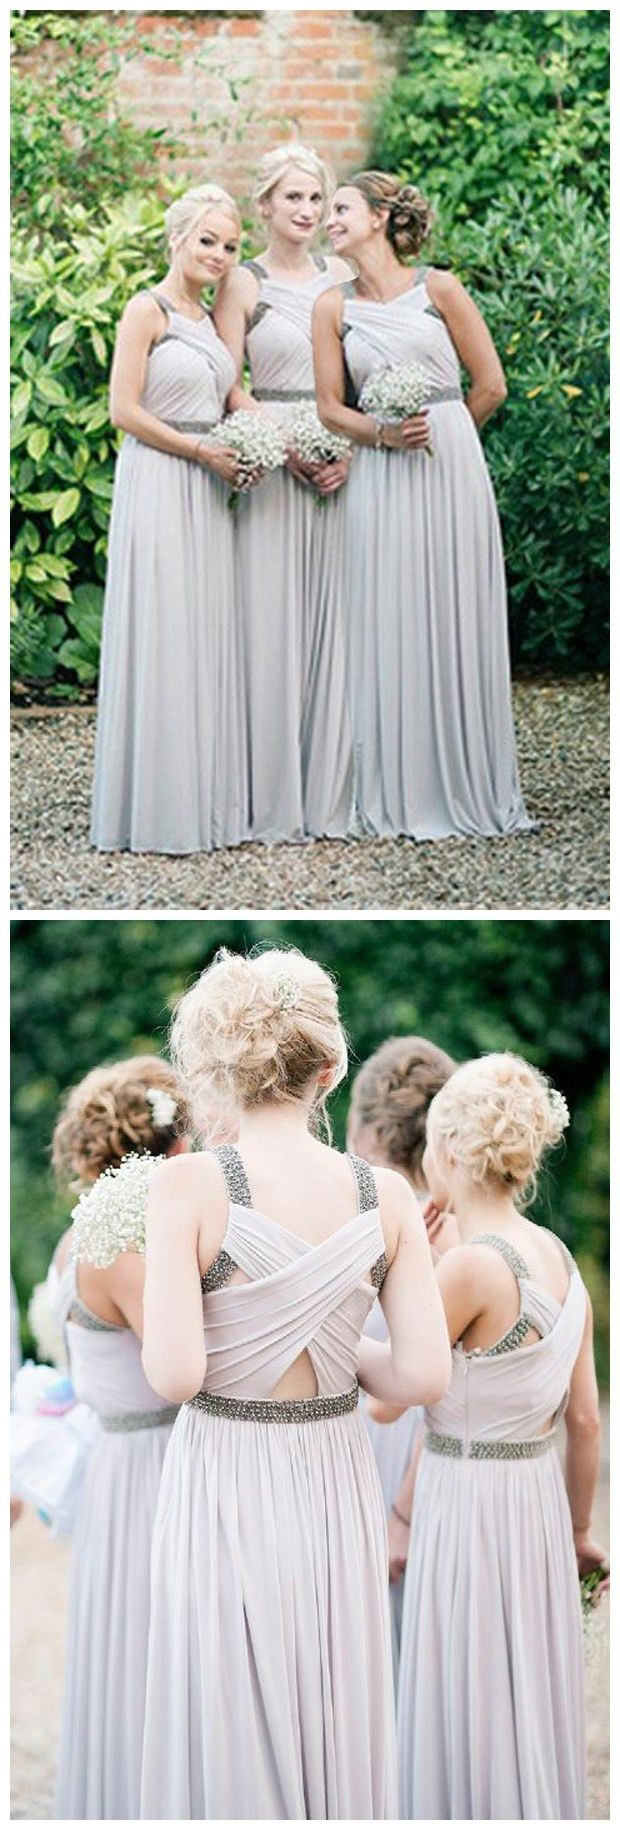 Best 25 discount bridesmaid dresses ideas on pinterest long long bridesmaid dress chiffon bridesmaid dress cheap bridesmaid dress discount bridesmaid dress sold by balladresses shop more products from balladresses ombrellifo Gallery